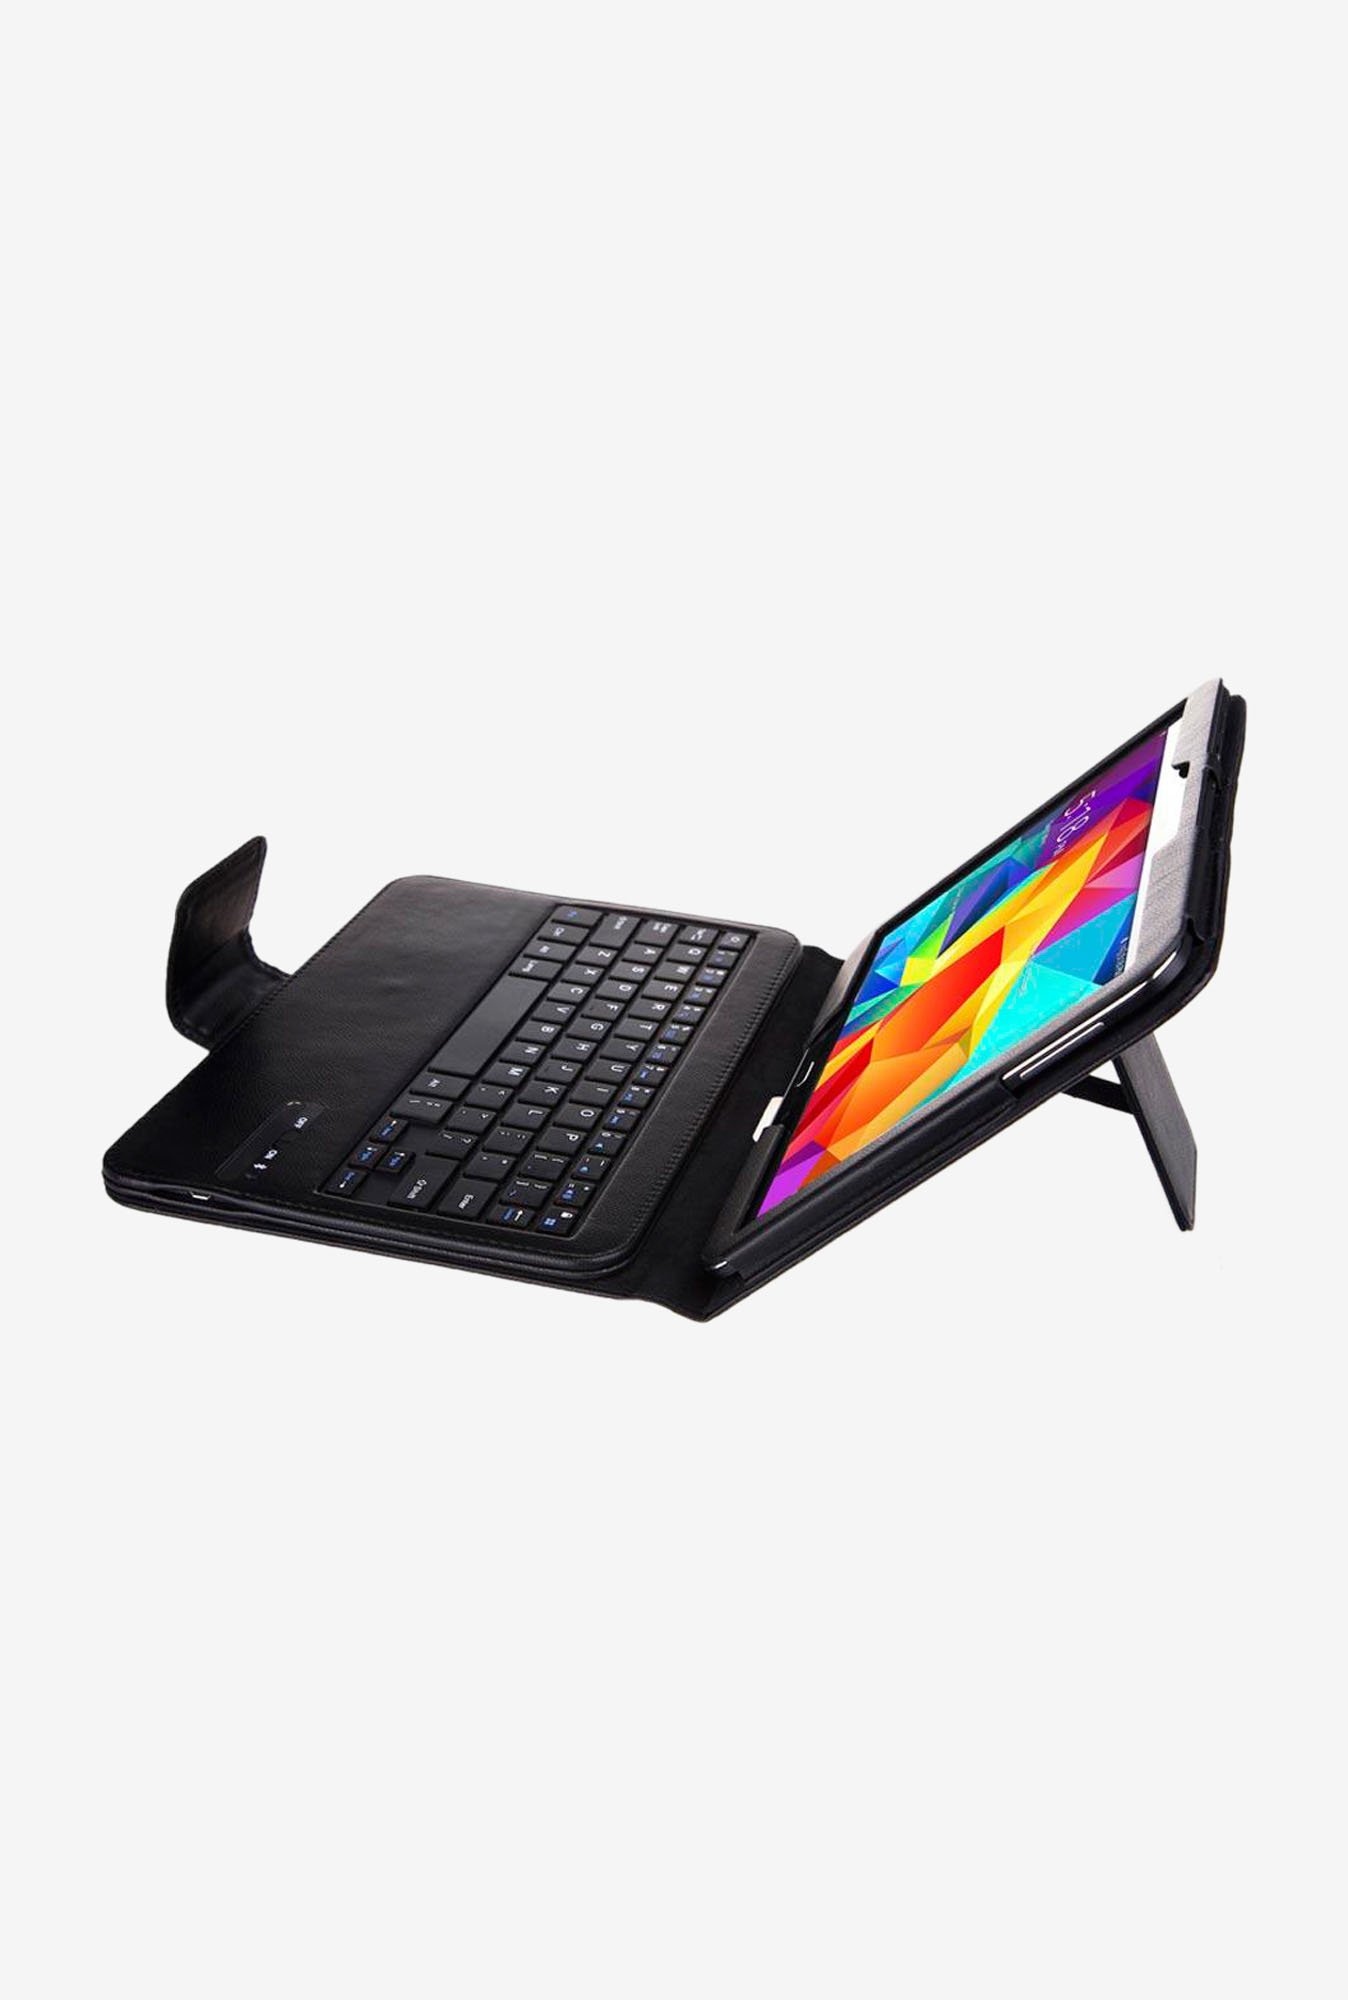 Callmate Bluetooth Keyboard With Case Black for Galaxy Tab 4